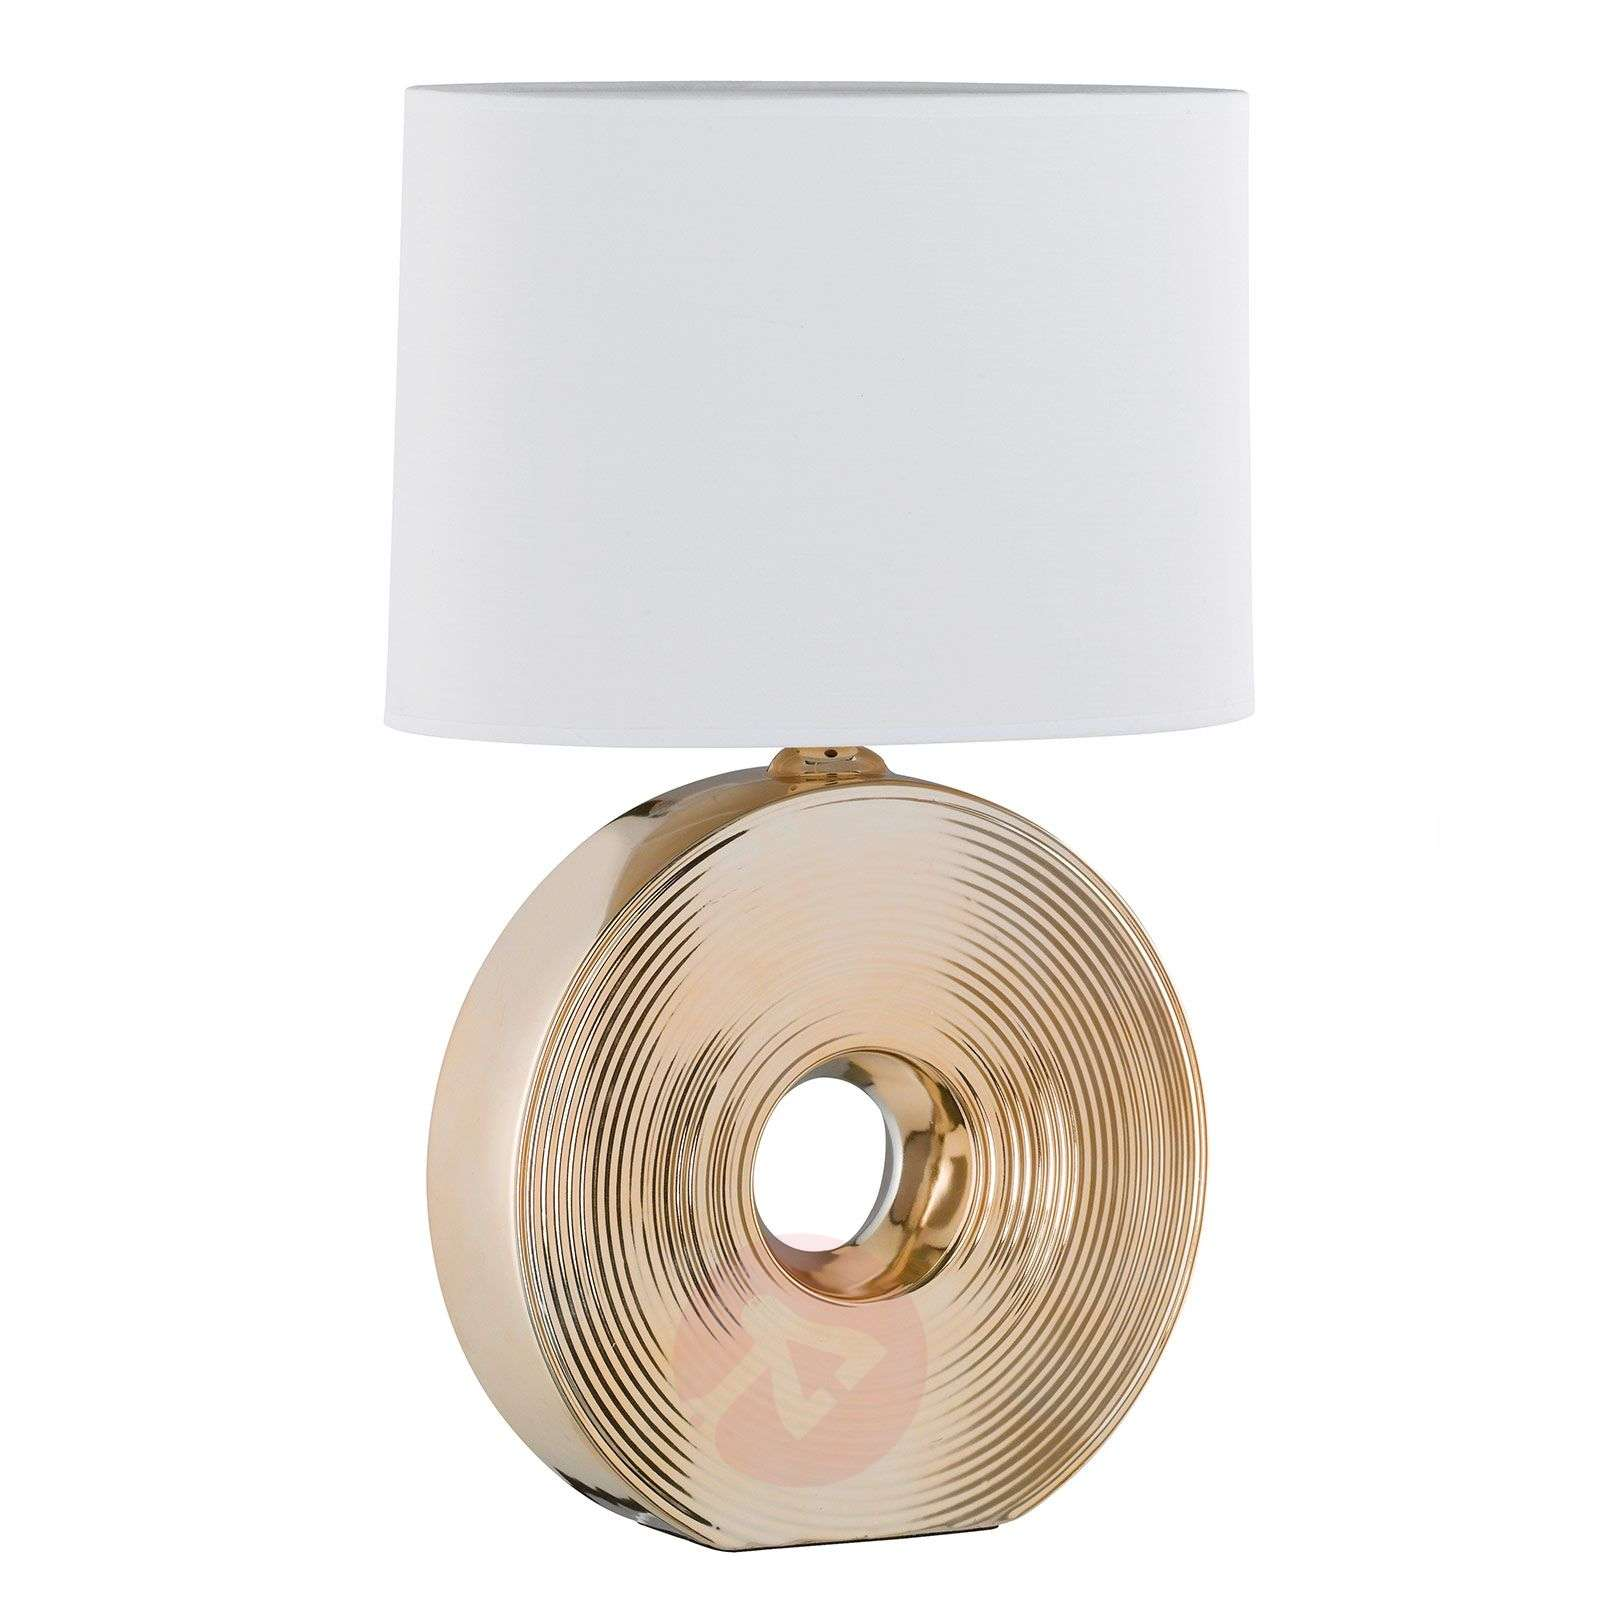 Eye beautiful table lamp with ceramic base gold 54-4581284-02